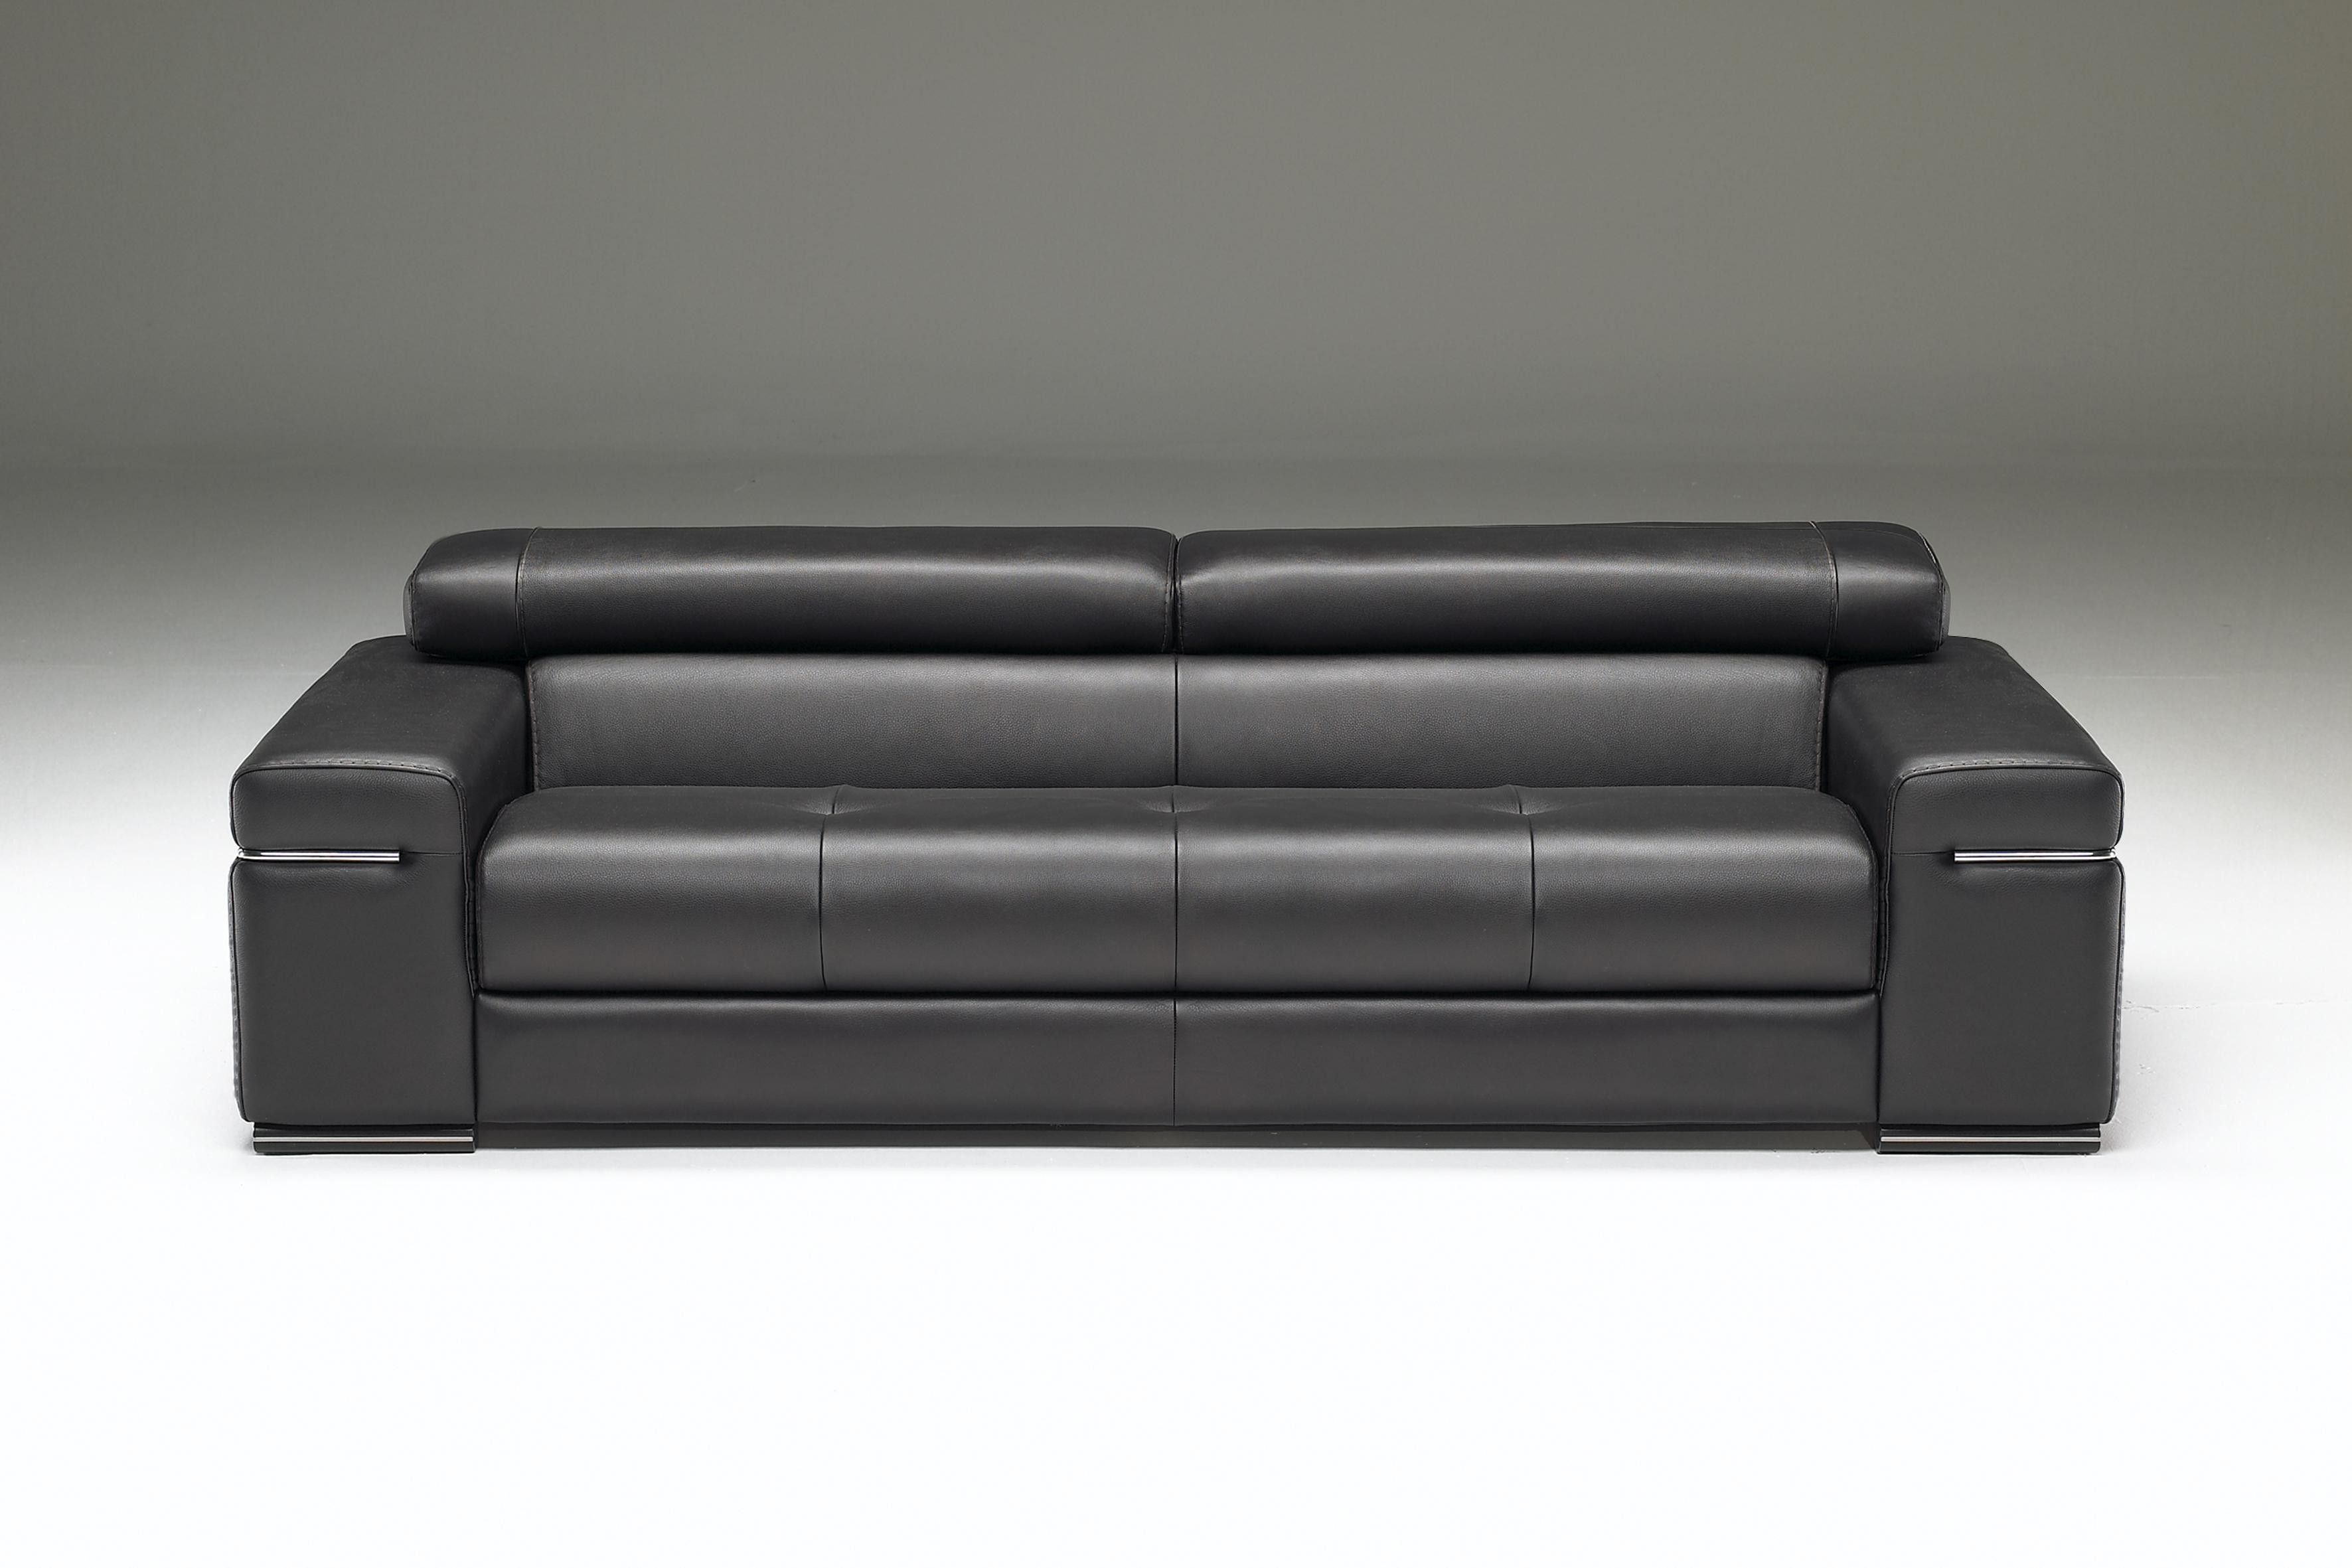 Avana Is One Of Our Most Popular Leather Sofa Models